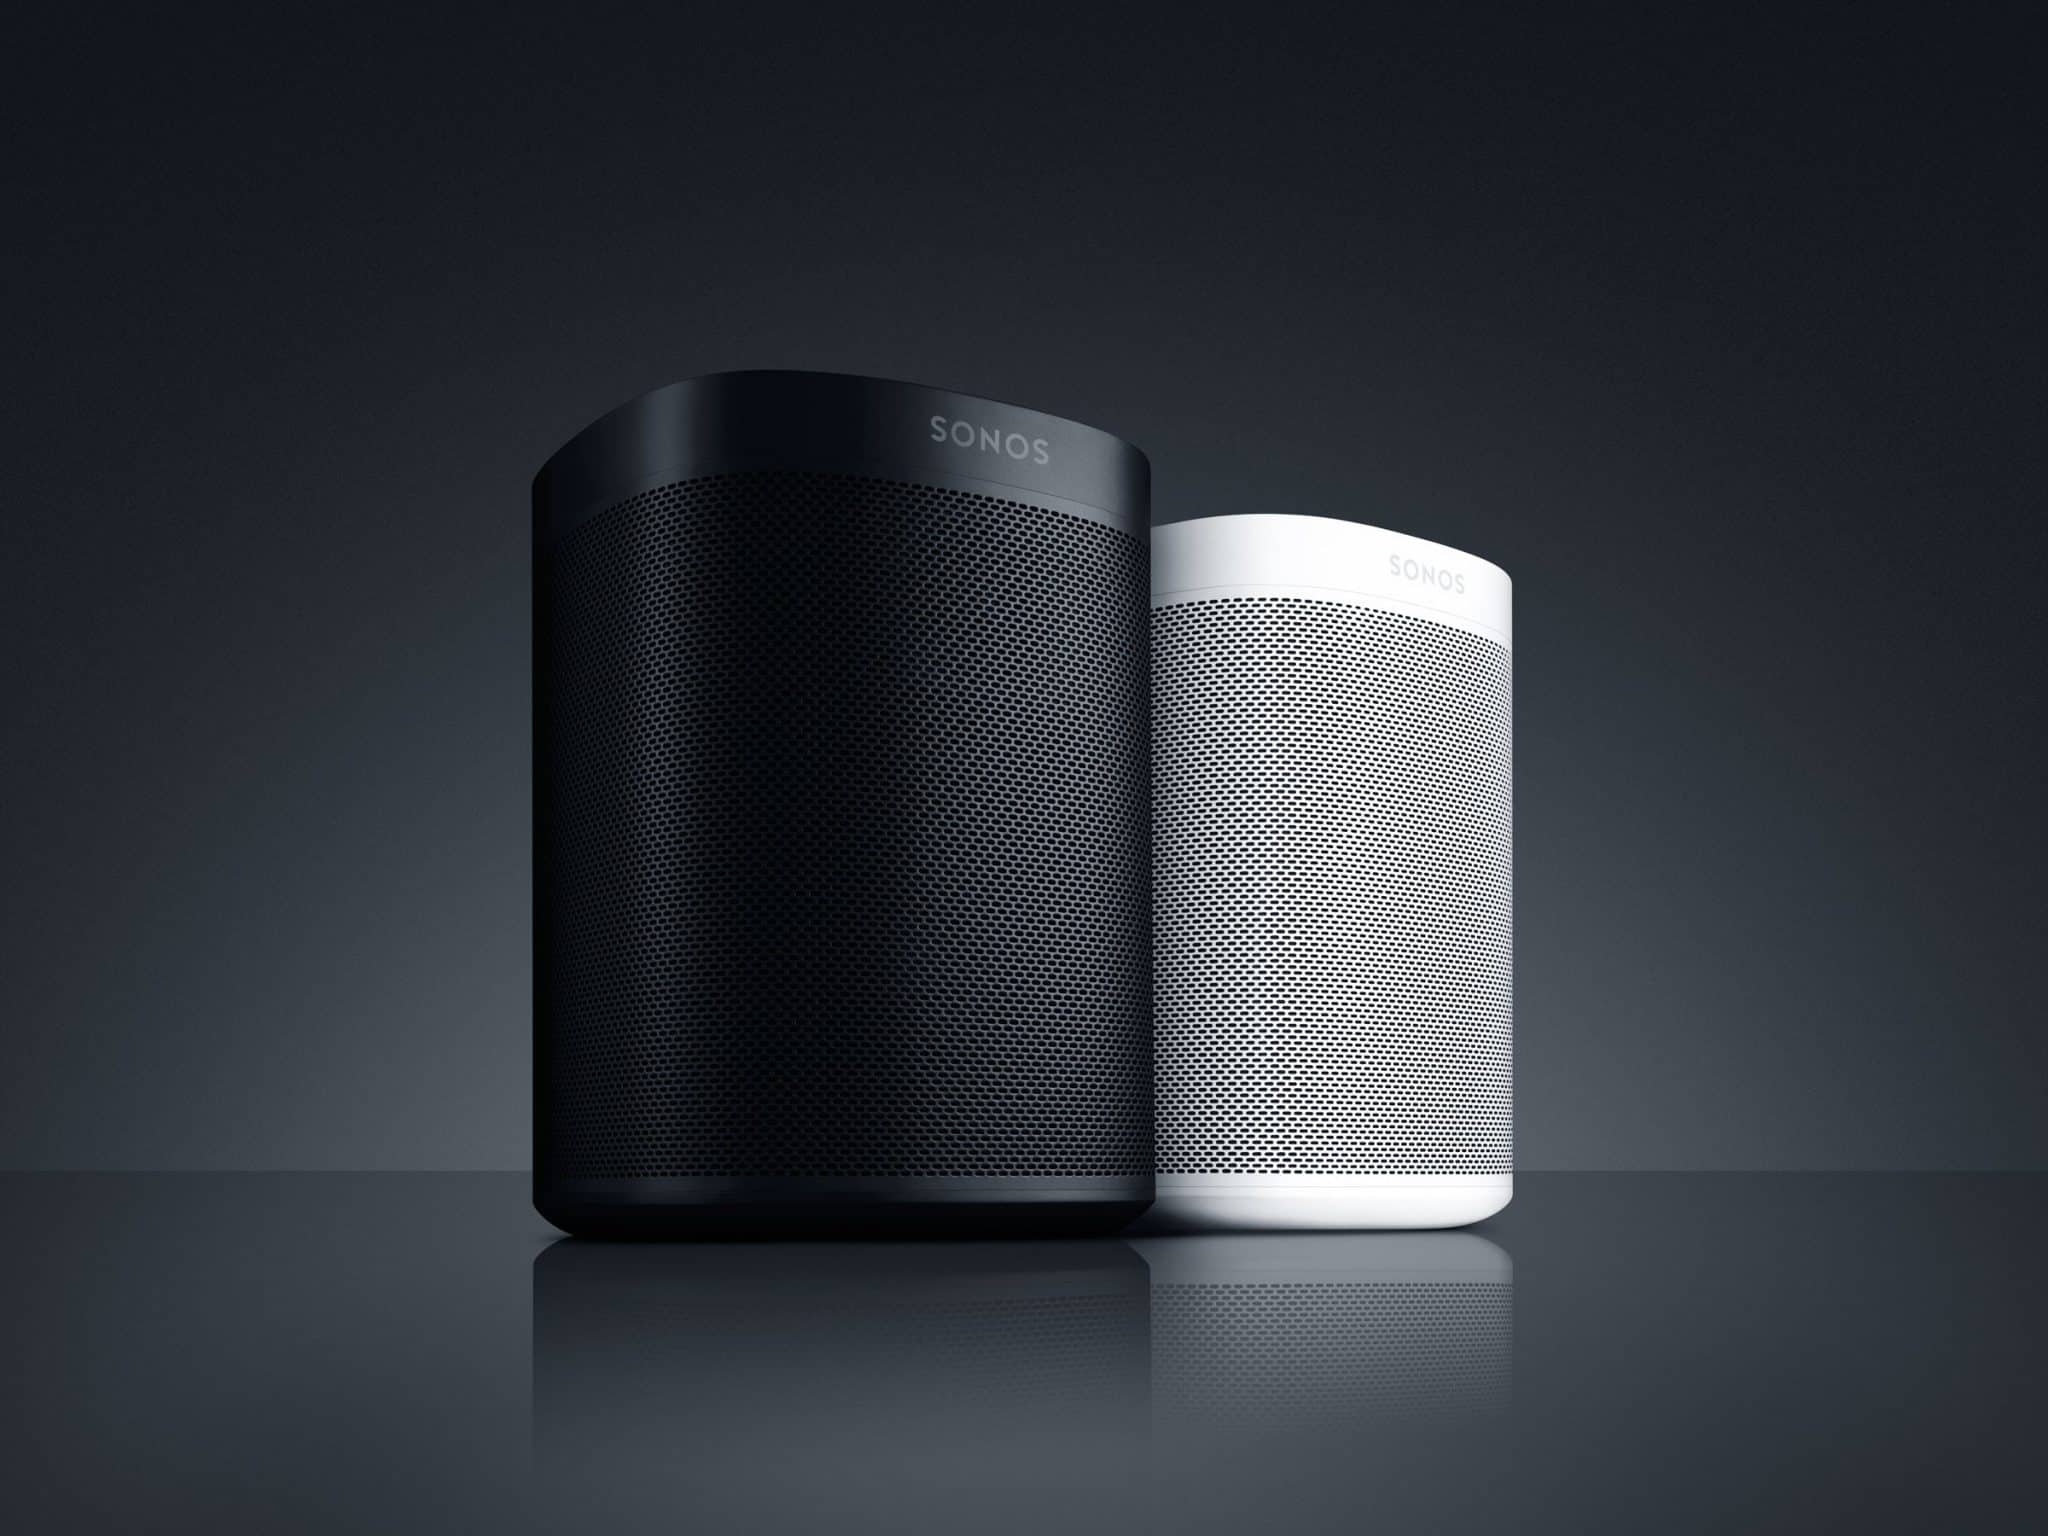 sonos one review smart speaker amazon alexa built in. Black Bedroom Furniture Sets. Home Design Ideas